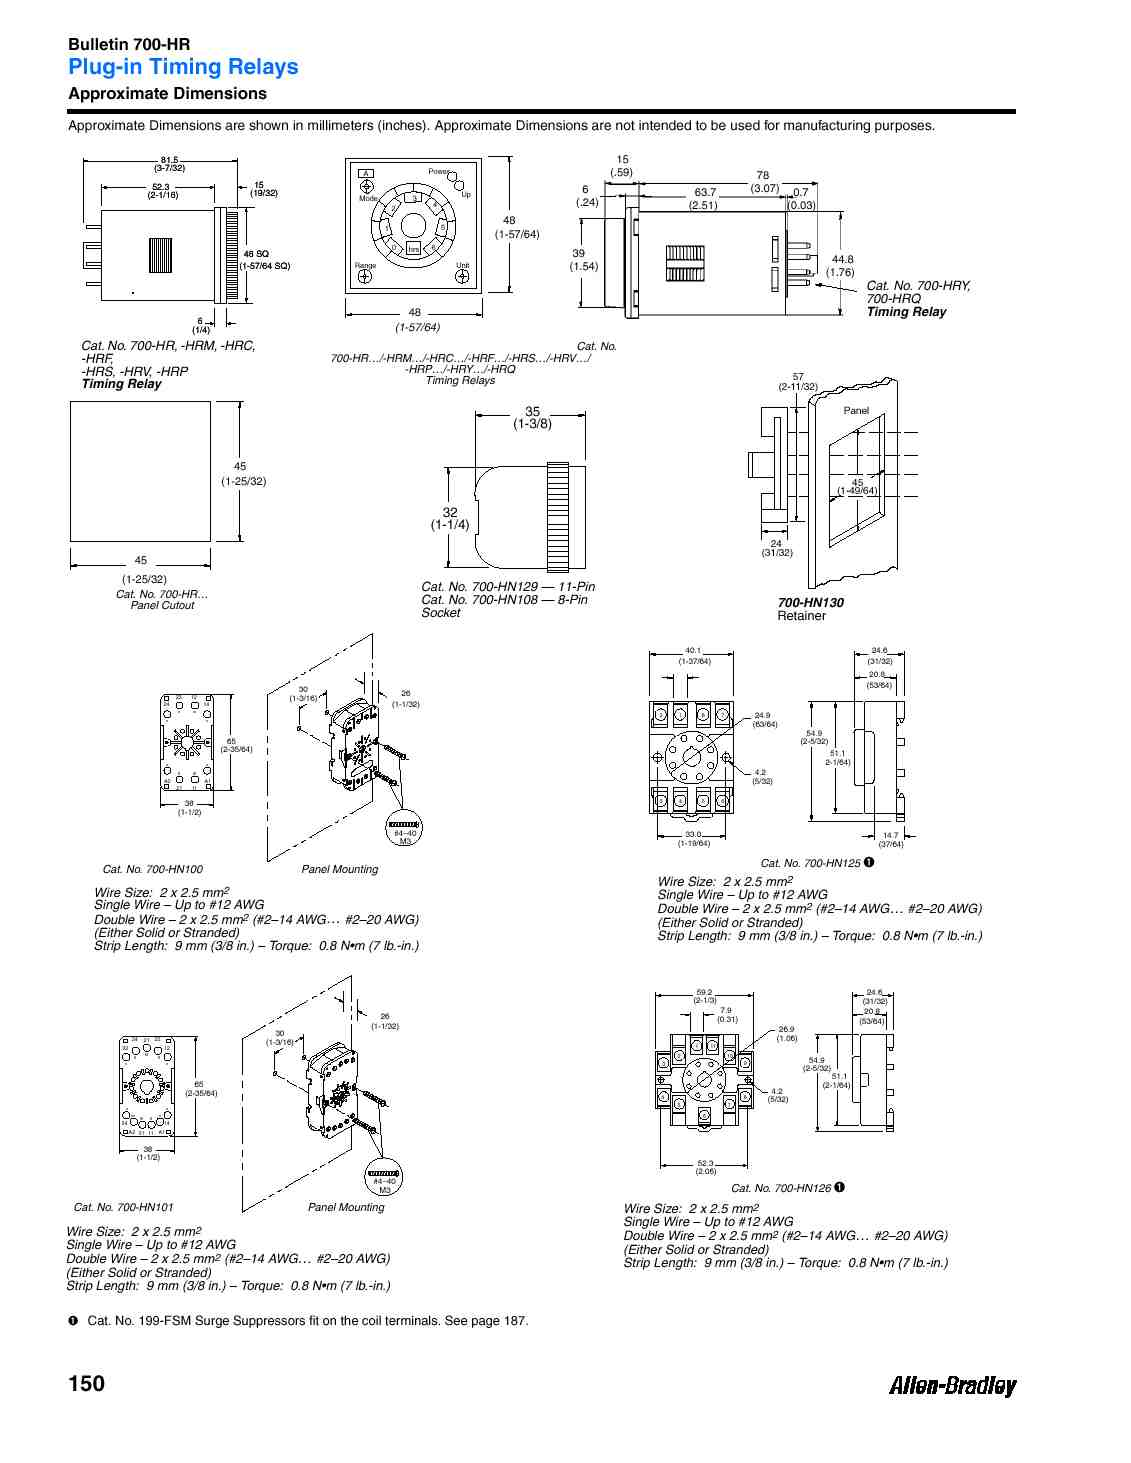 42853dabf8e8b83edbb5210e5e867e4bf5fdf641 11 pin latching relay wiring diagram 11 pin relay schematic 11 pin relay wiring schematic at mifinder.co